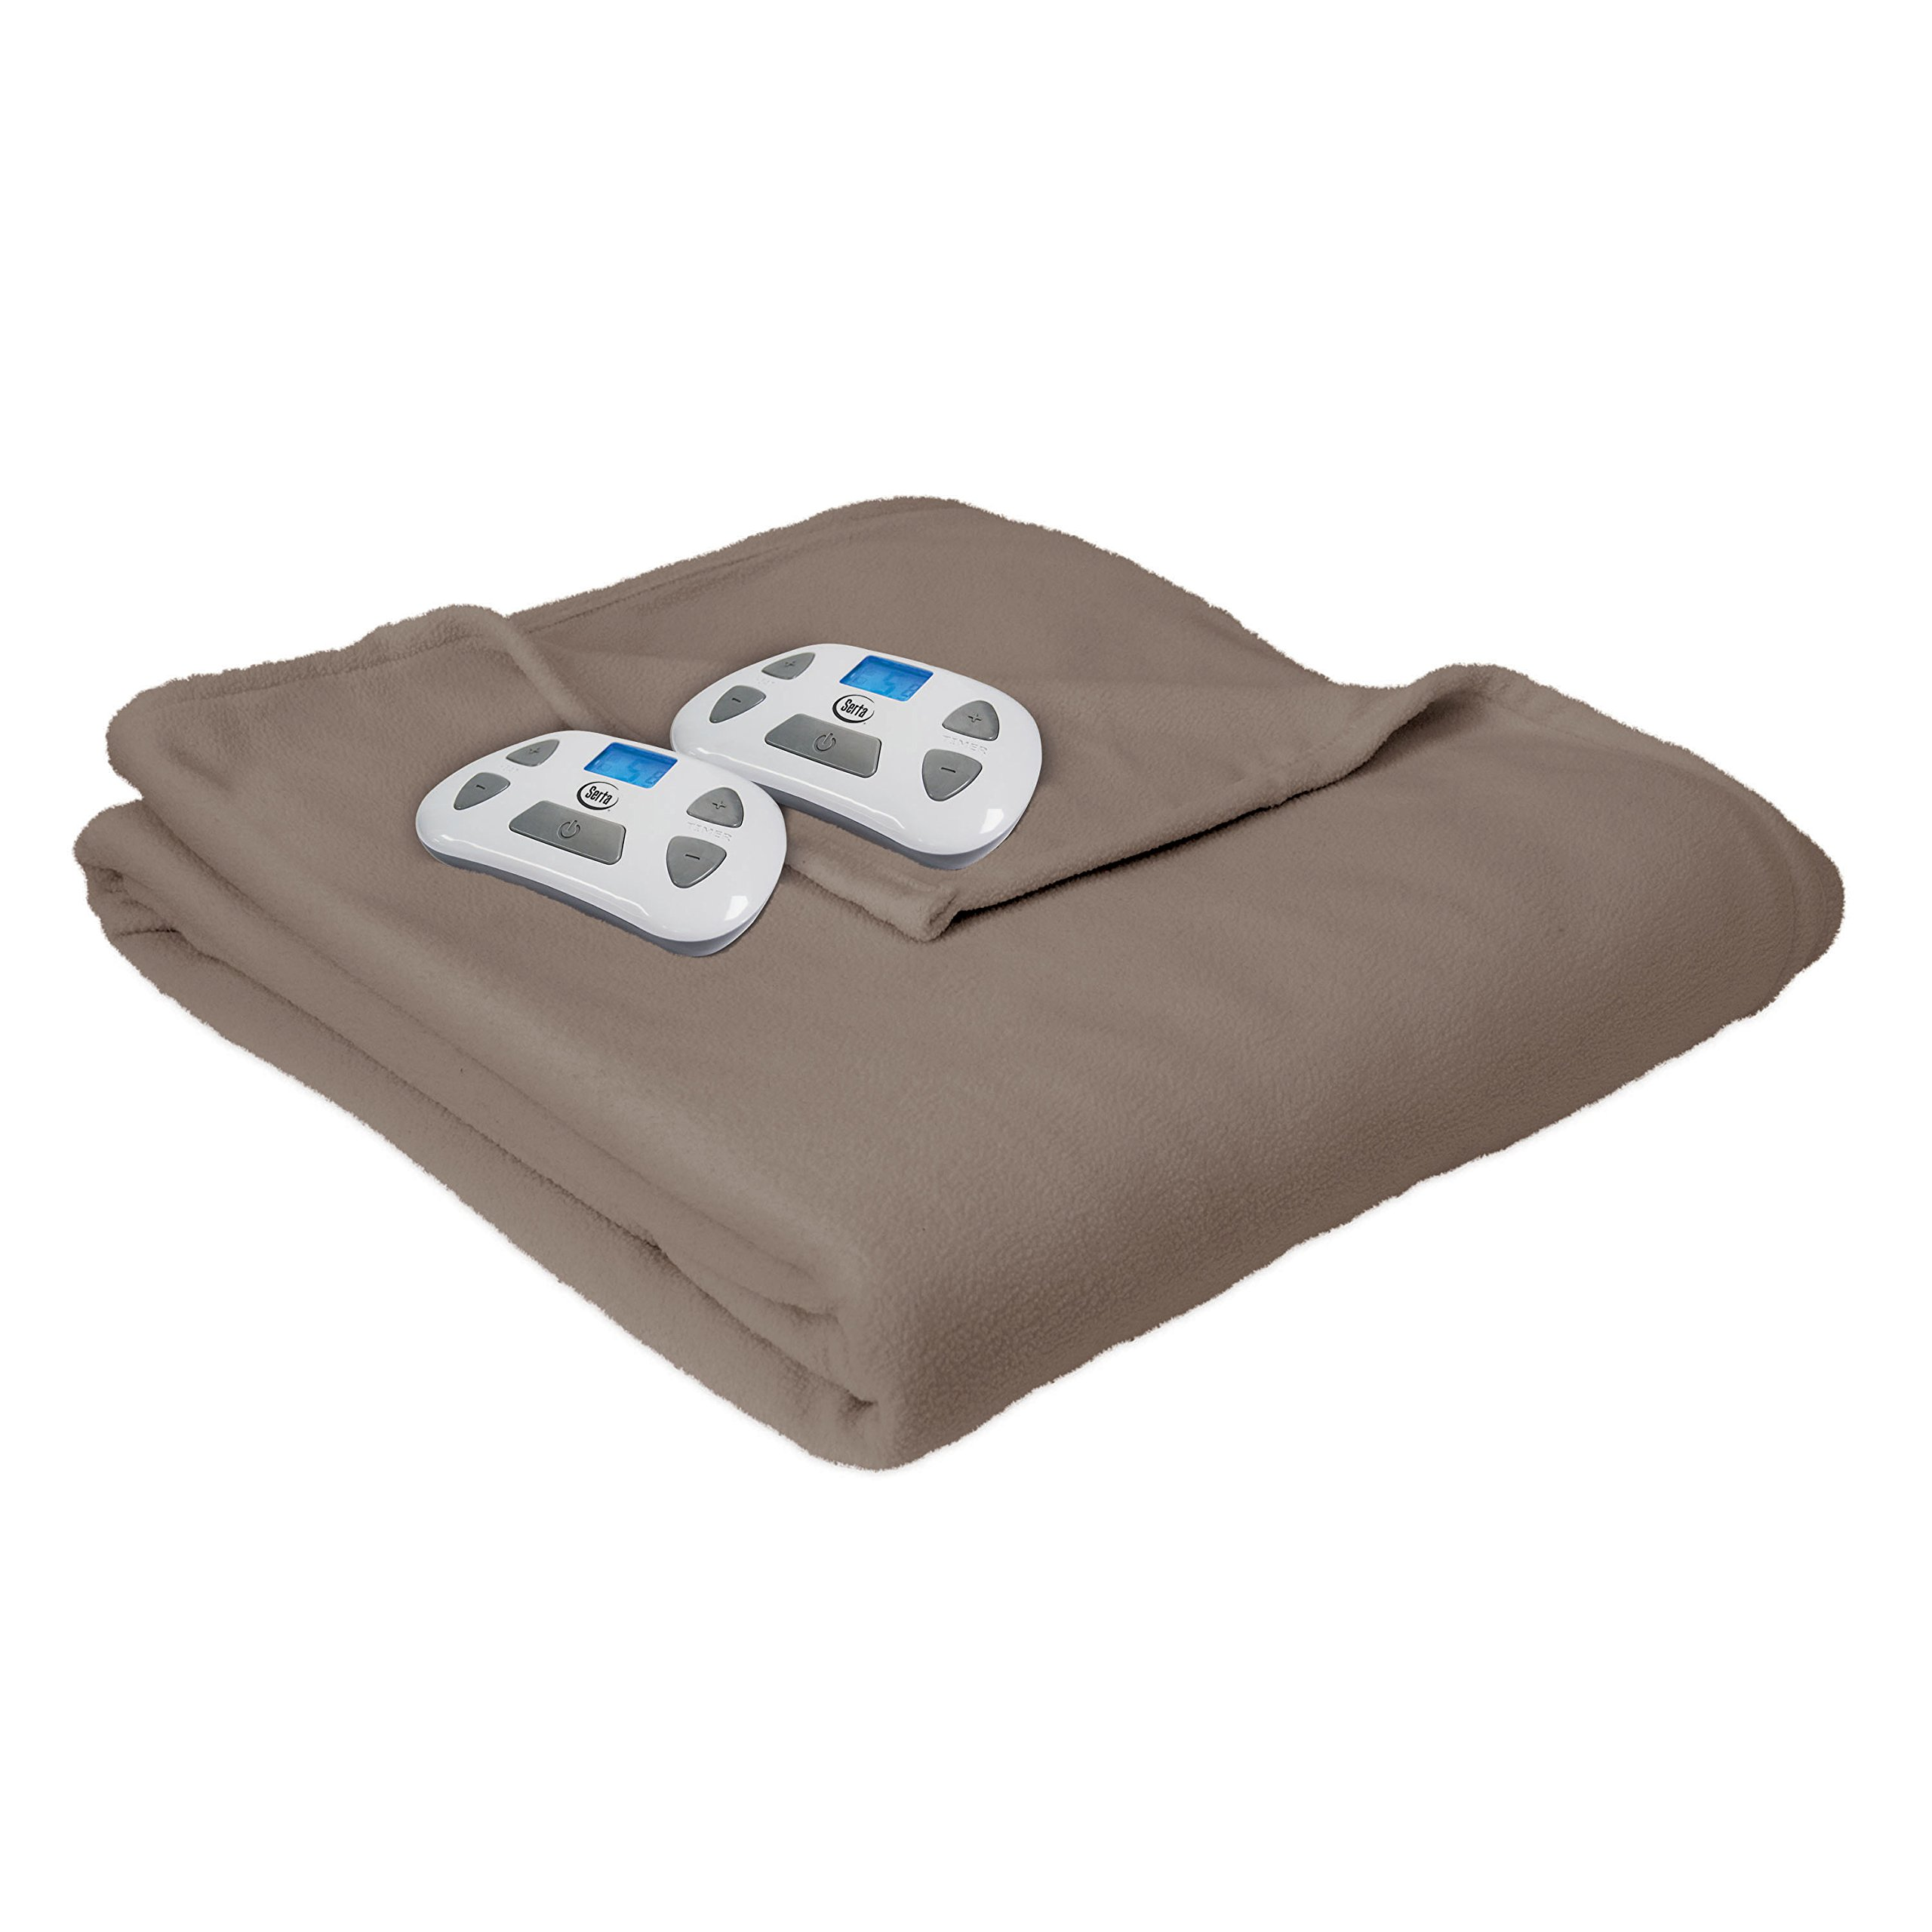 Serta Heated Electric Fleece Blanket  with Programmable Digital Controller, King, Natural Model 0917 by Serta